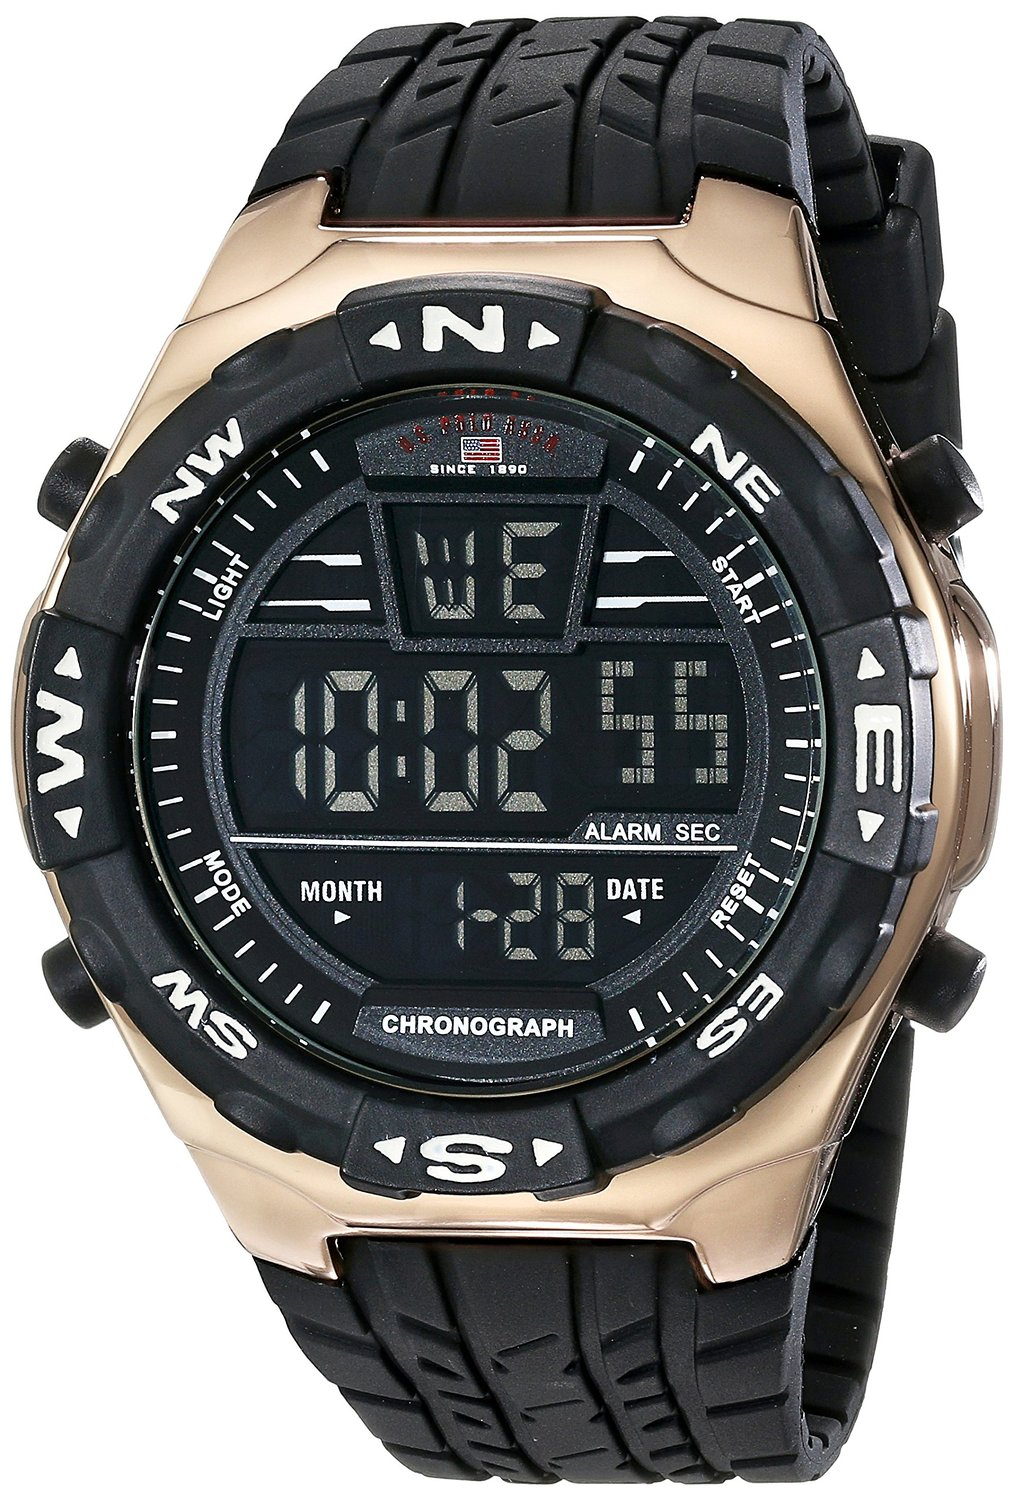 bb2a4b9b79d Get Quotations · U.S. Polo Assn. Sport Men s US9162 Black Silicone Digital  Watch